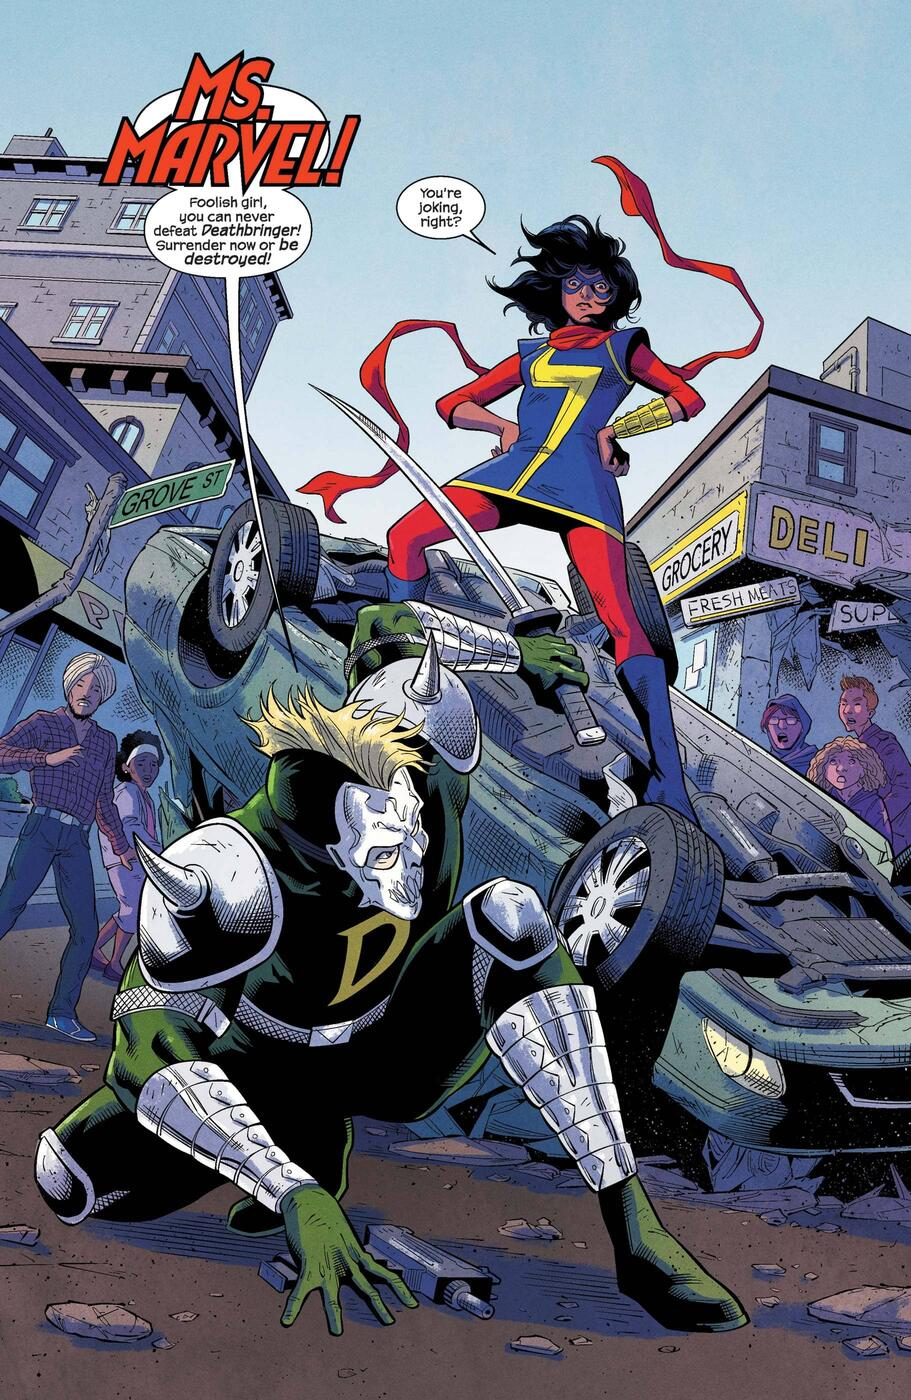 Taking on the baddies in MAGNIFICENT MS. MARVEL (2019) #1.